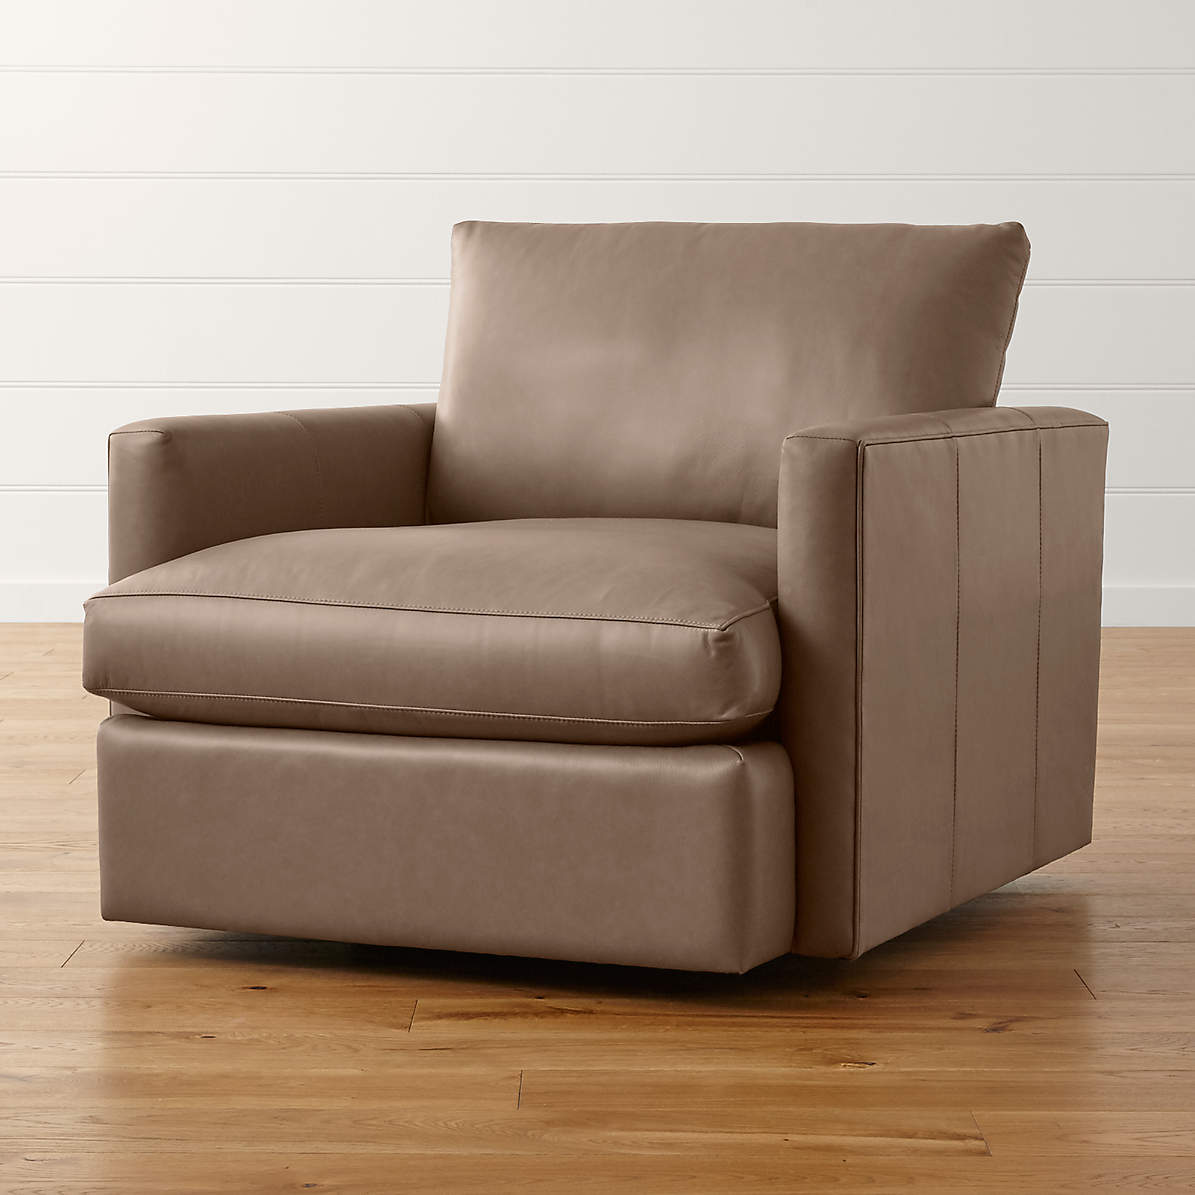 Lounge Ii Small Leather Swivel Chair Reviews Crate And Barrel